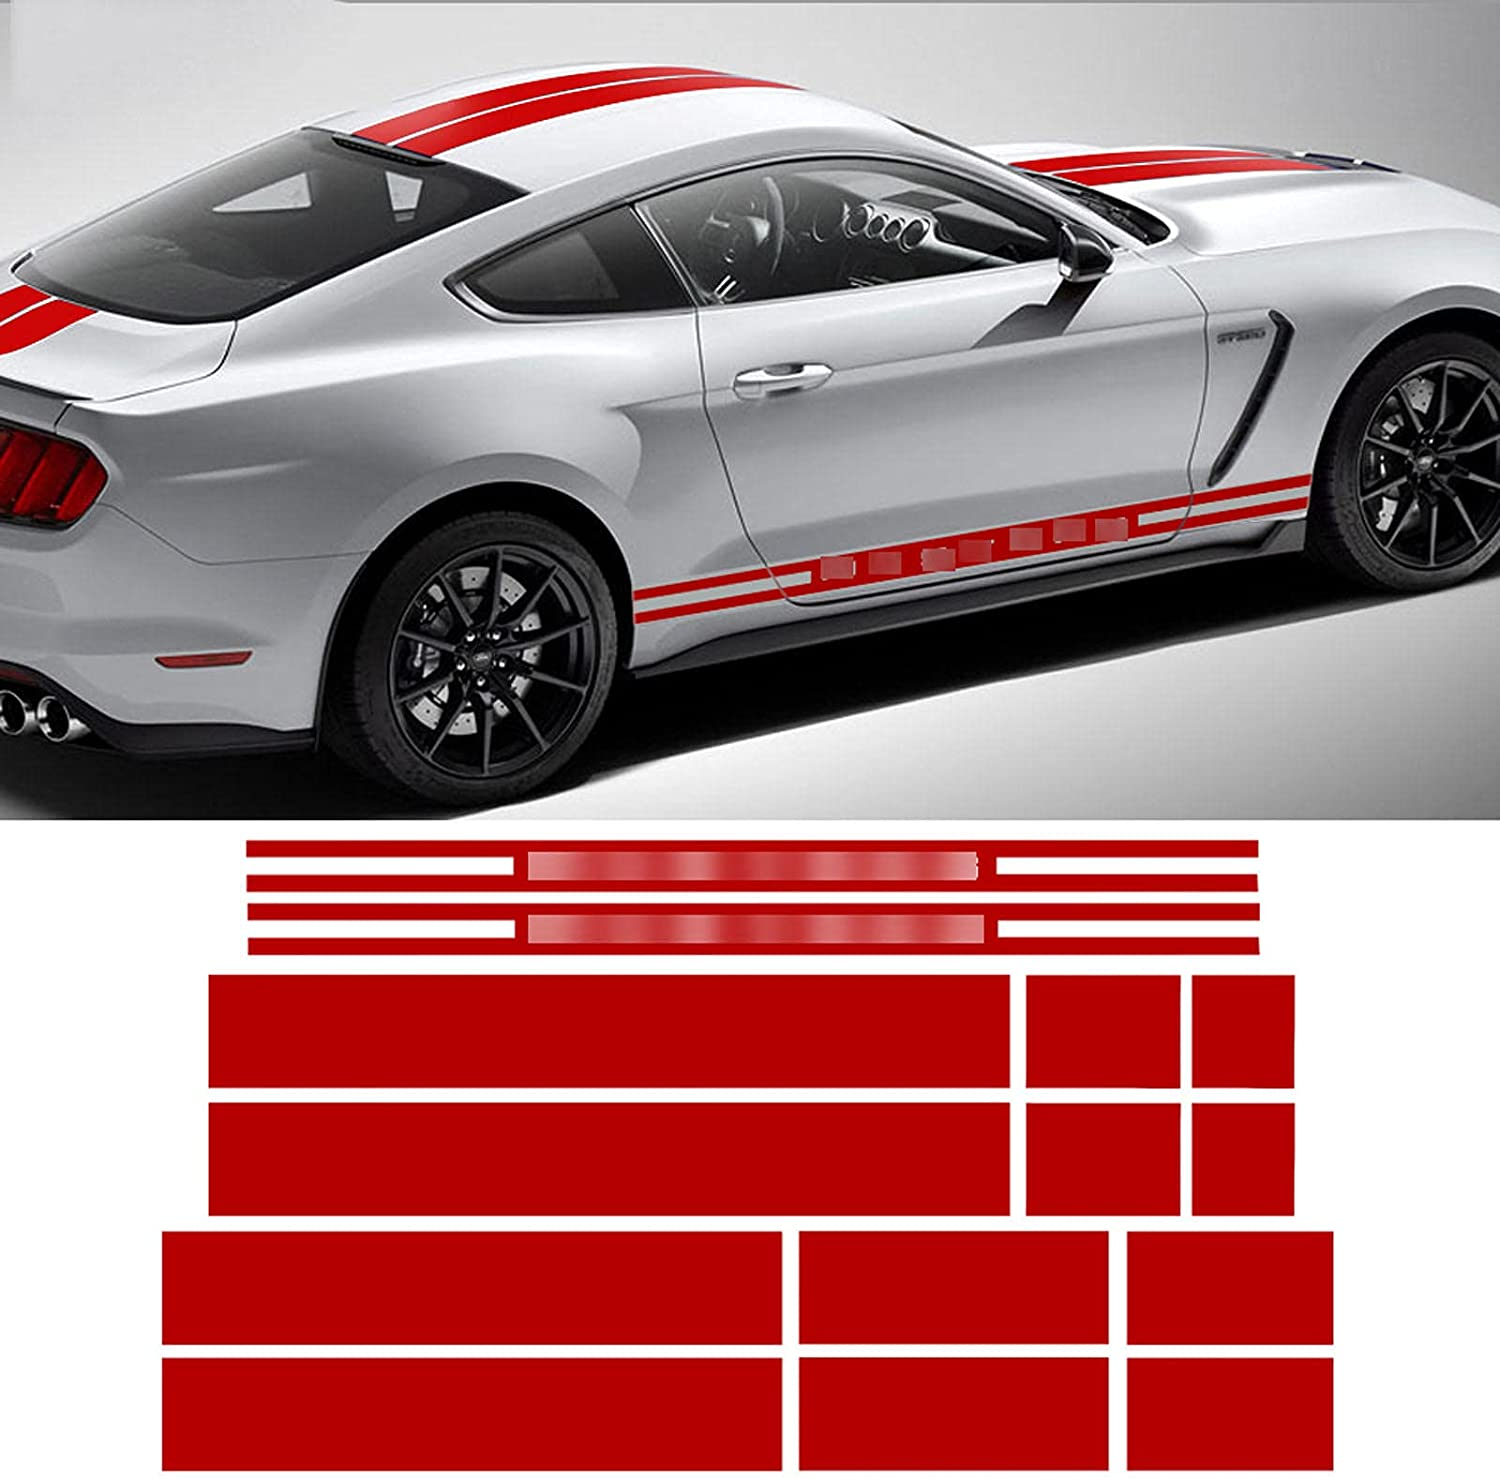 XKHSD Car Side Skirt Stripe Decal 2015- Mustang for Popular Discount is also underway popular Ford Decals